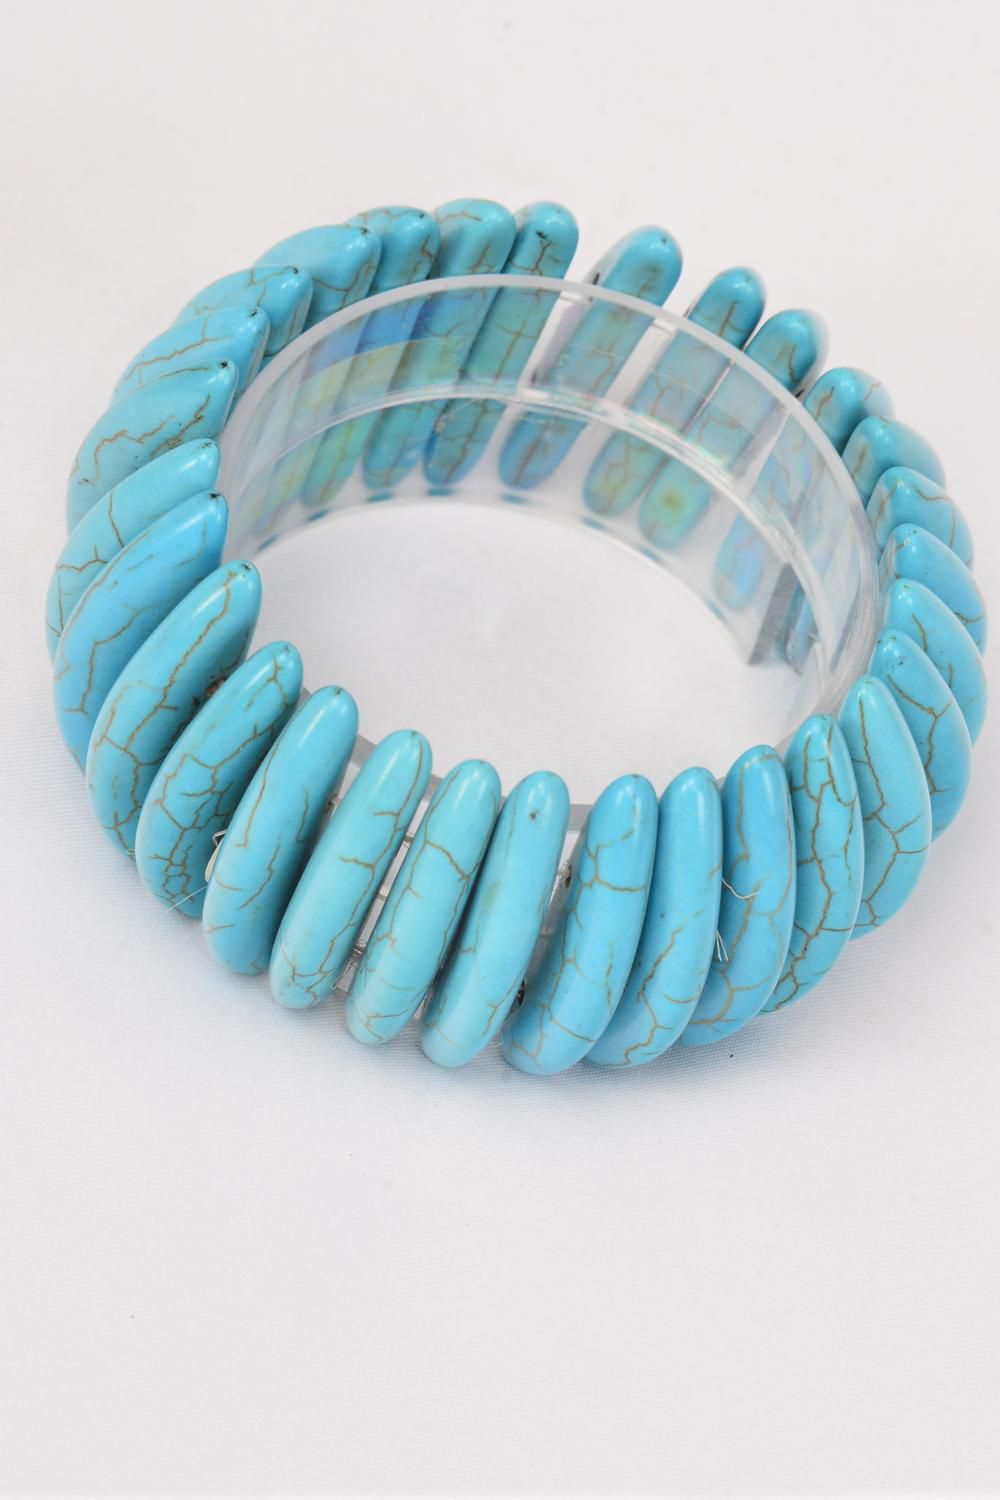 "Bracelet Turquoise Semiprecious Stones Stretchy/PC **Stretch** High-1.75"", Hang Tag & OPP Bag & UPC Code"